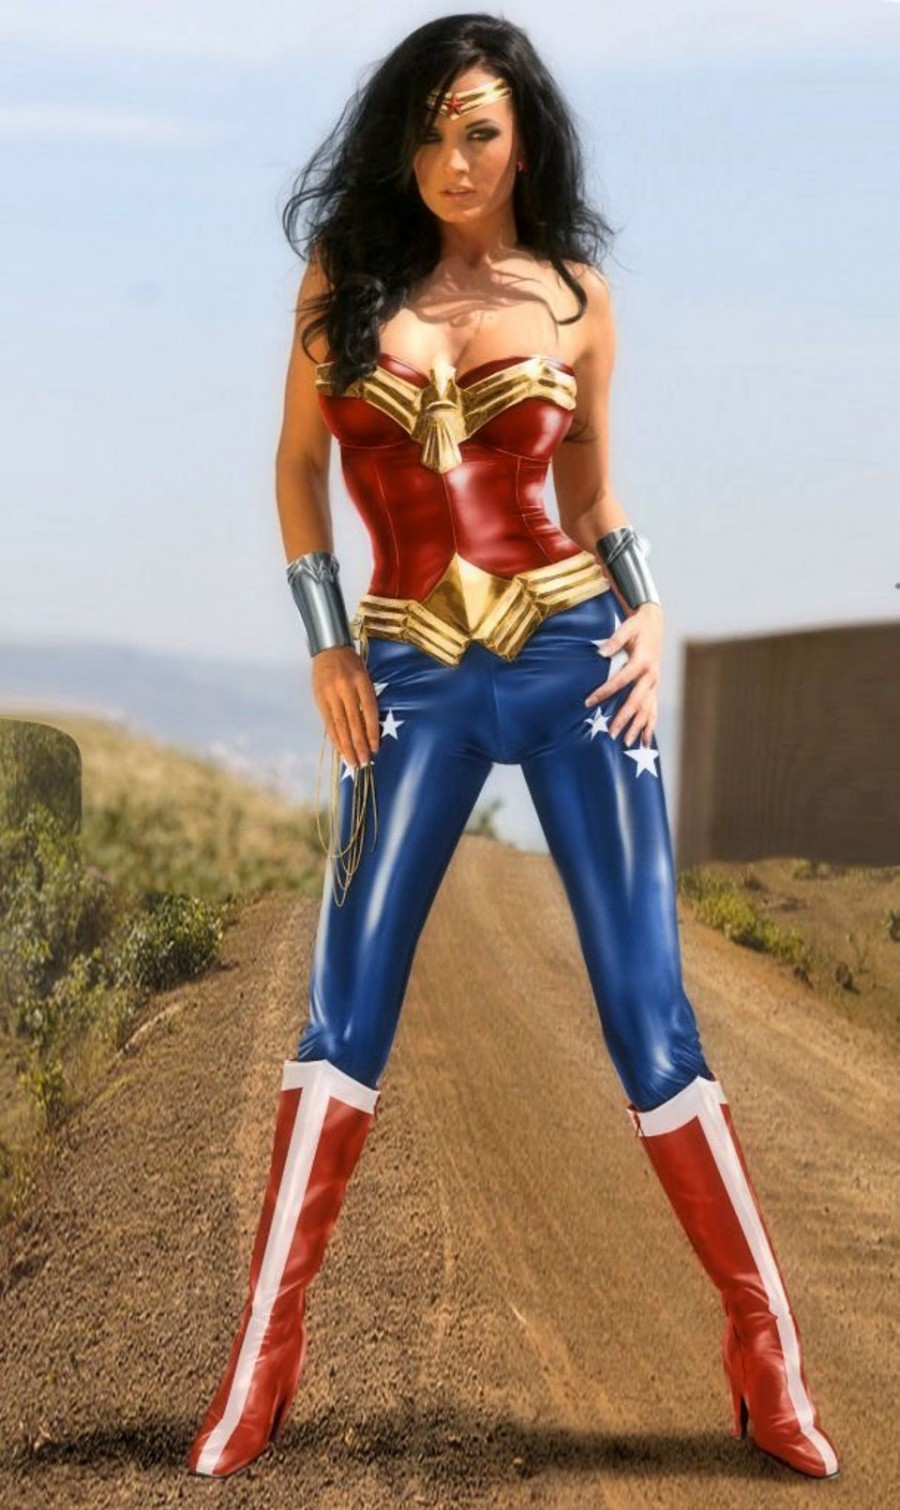 37 Hottest Wonder Woman Cosplays That Will Rob Your Hearts